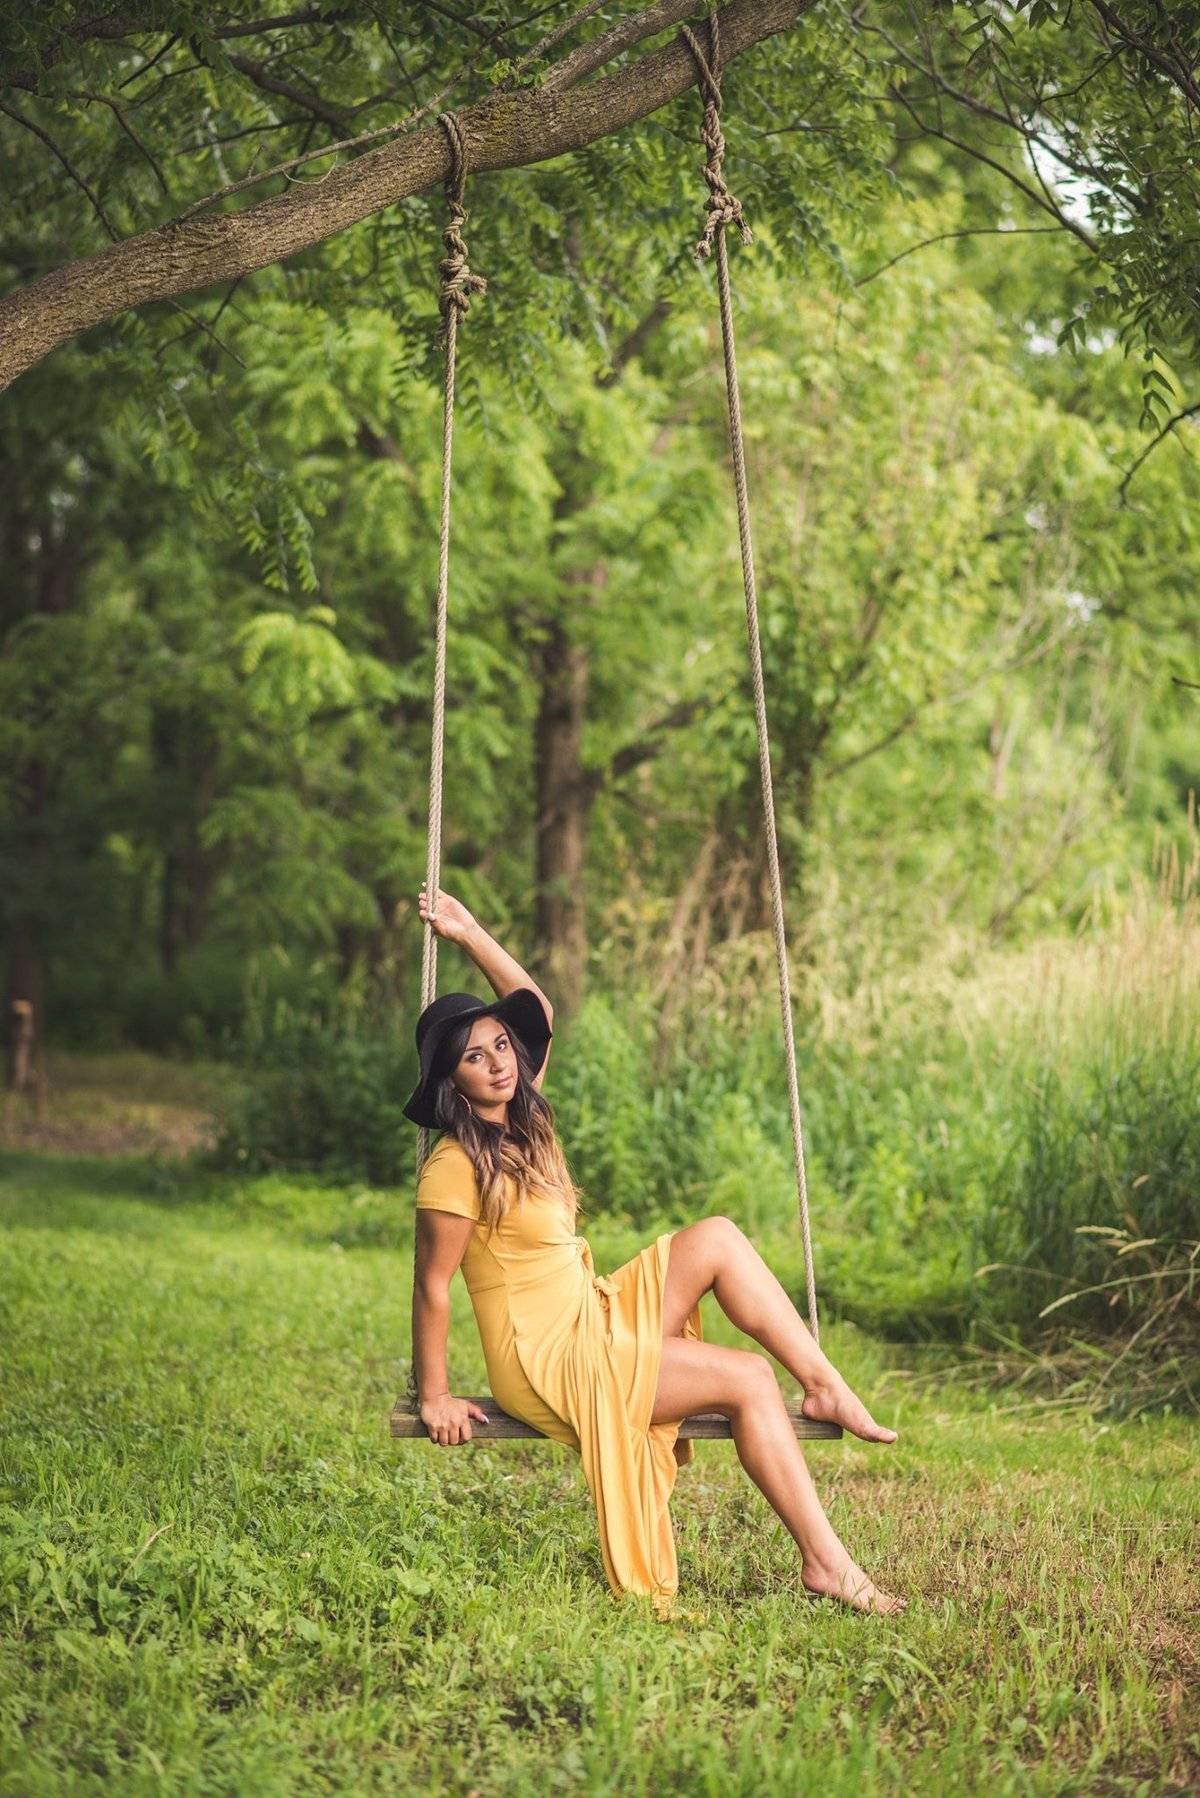 Senior Session Girl in Woods on Rope Swing